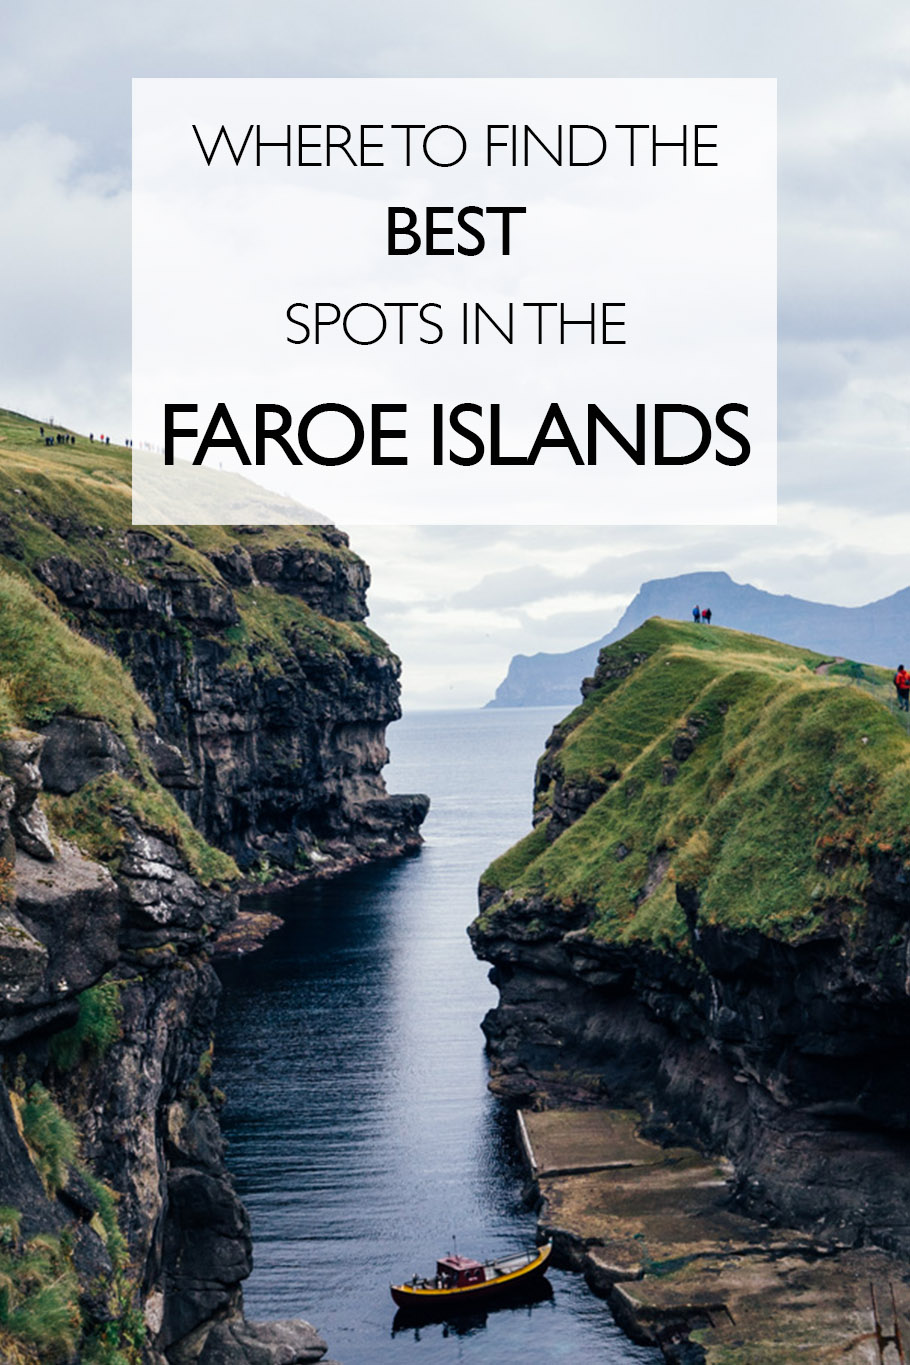 Islands Of The World Fashion Week 2012: Discovering The Best Spots In The Faroe Islands: Things To